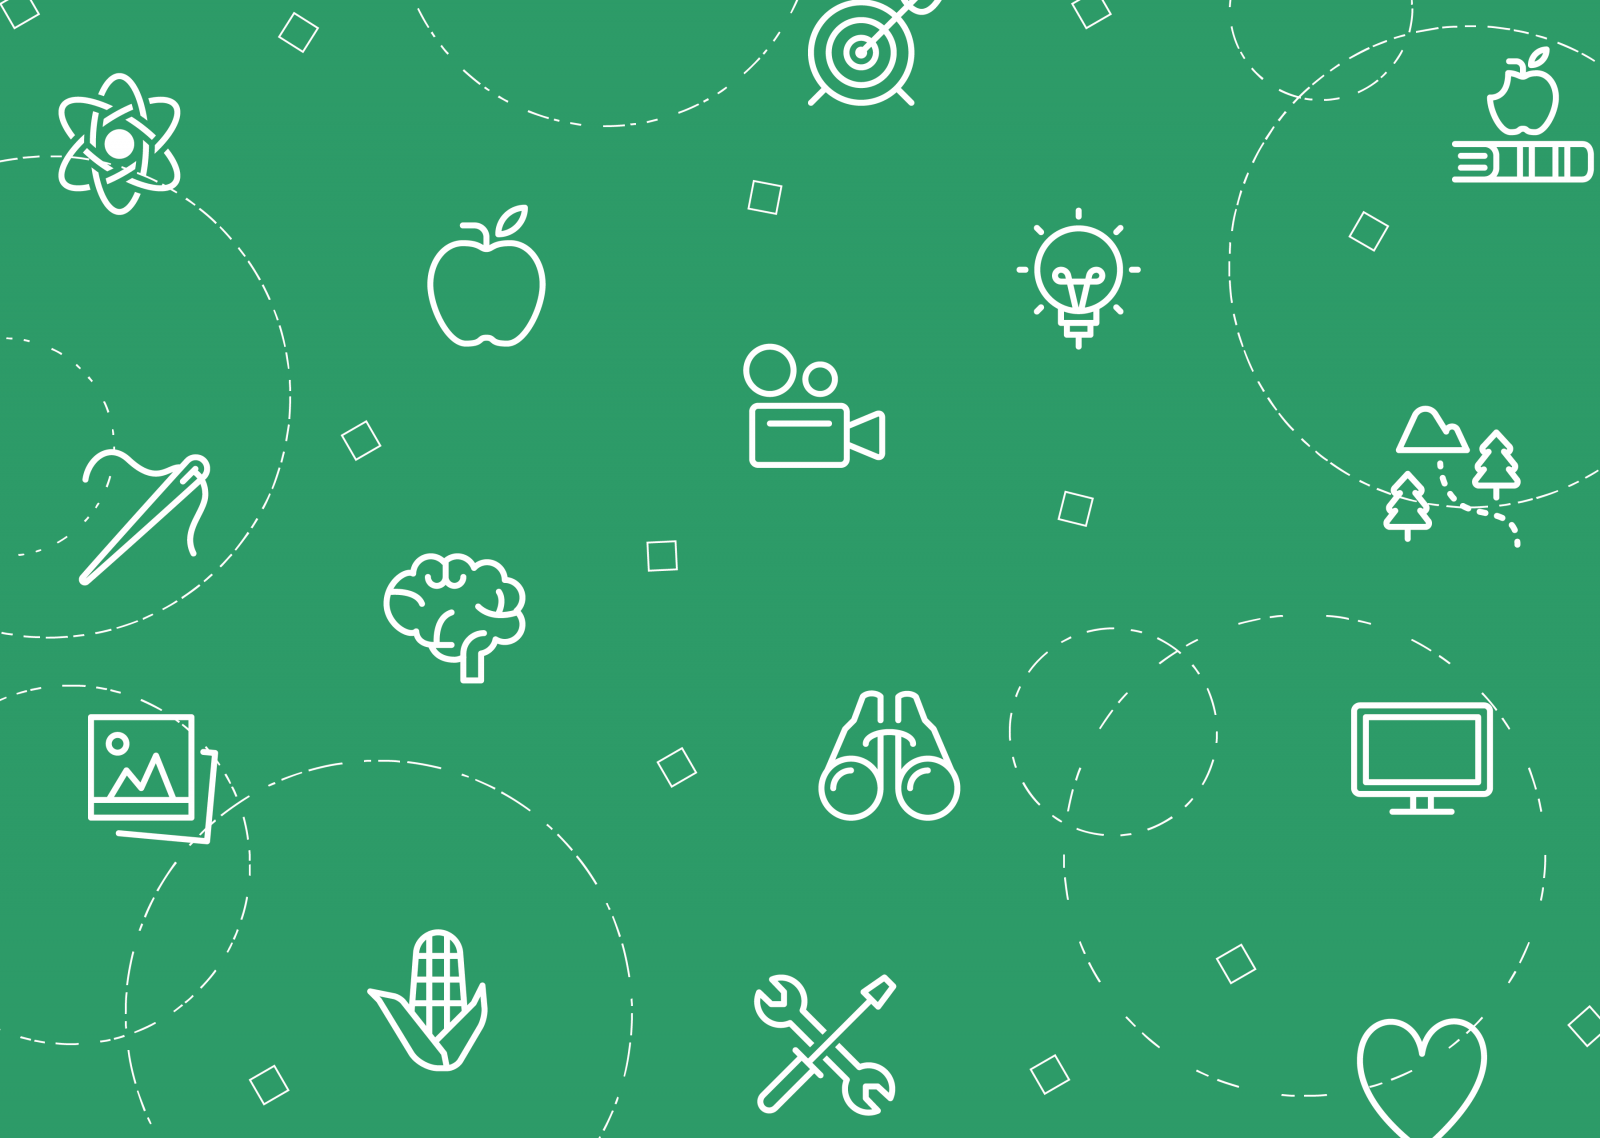 green graphic with a variety of project icons